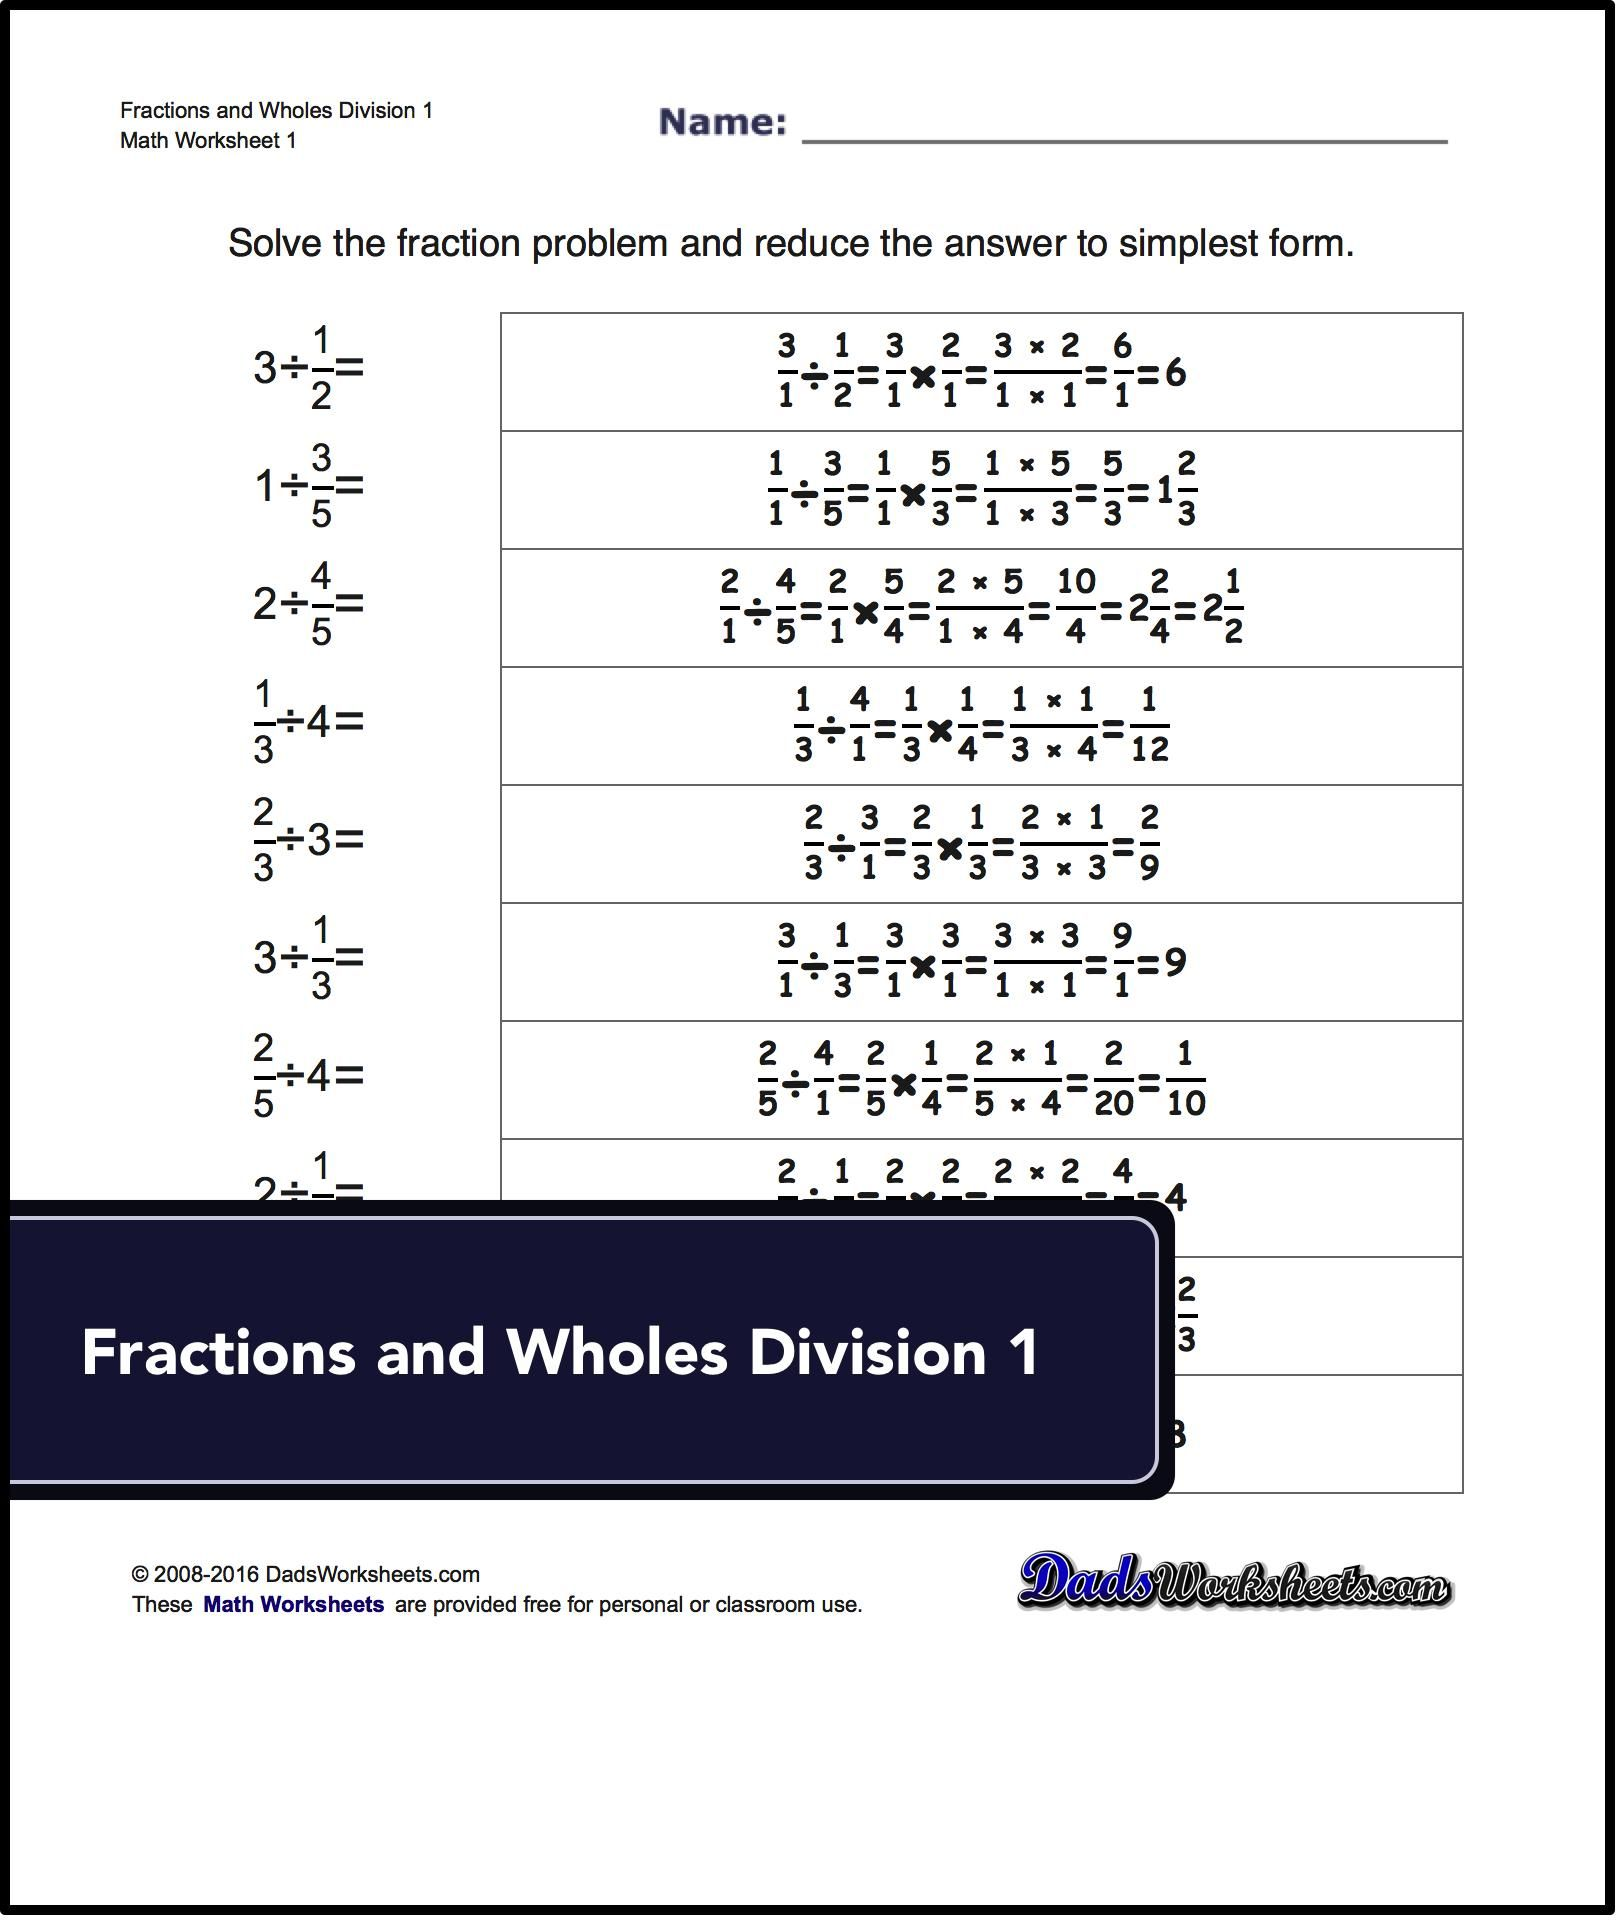 Basic Fraction Division Worksheets Including Dividing Fractions With Whole Numbers And Dividing